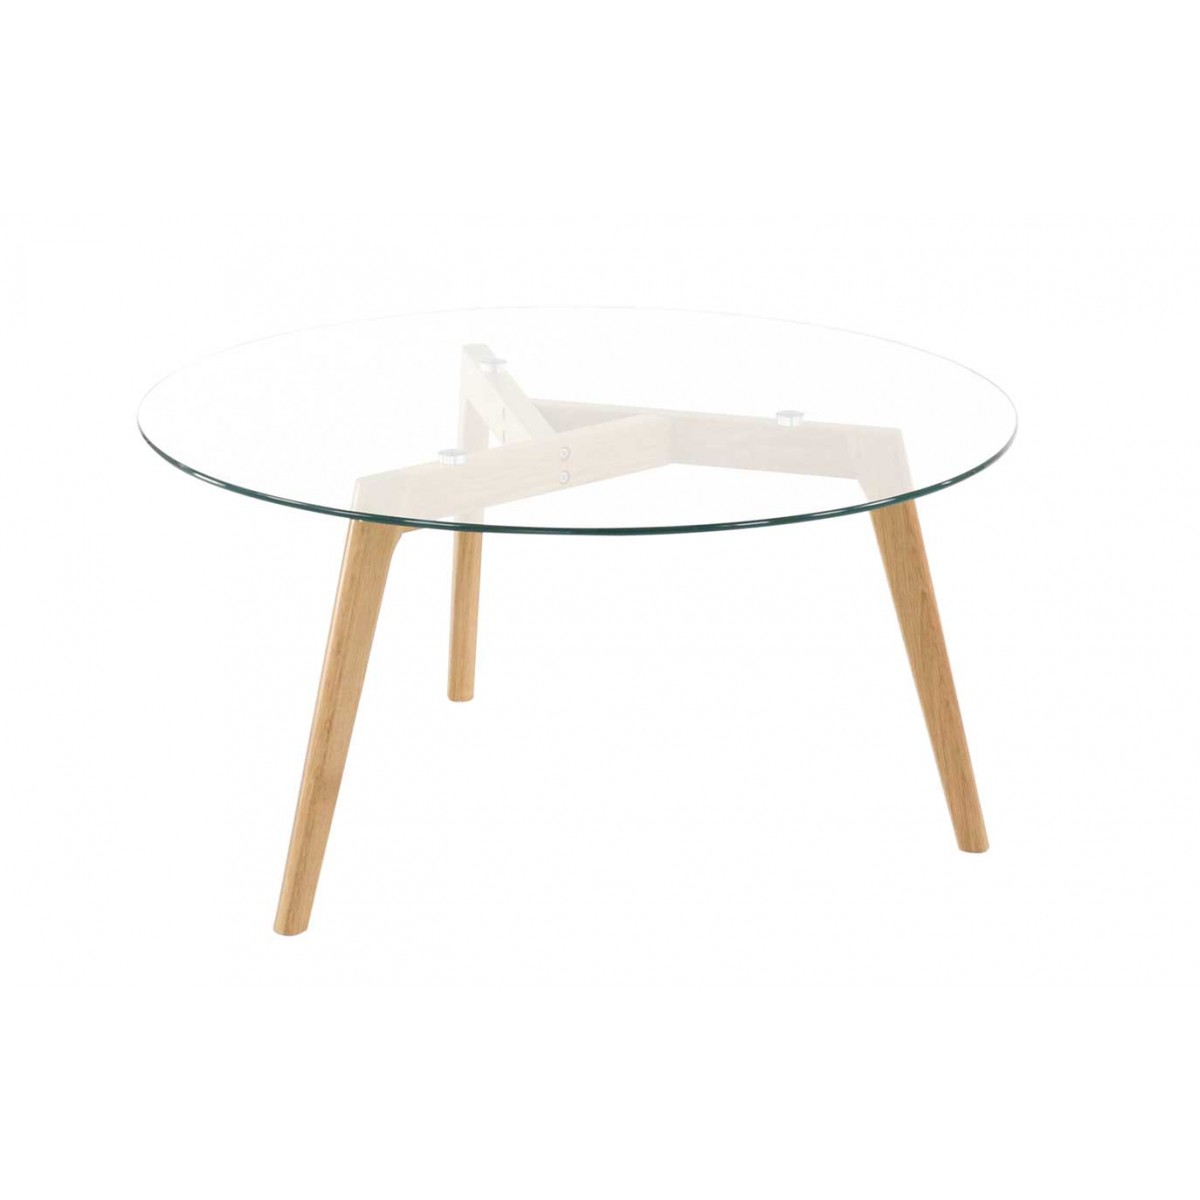 Table basse en verre ronde design scandie mooviin - Fly table basse ronde ...